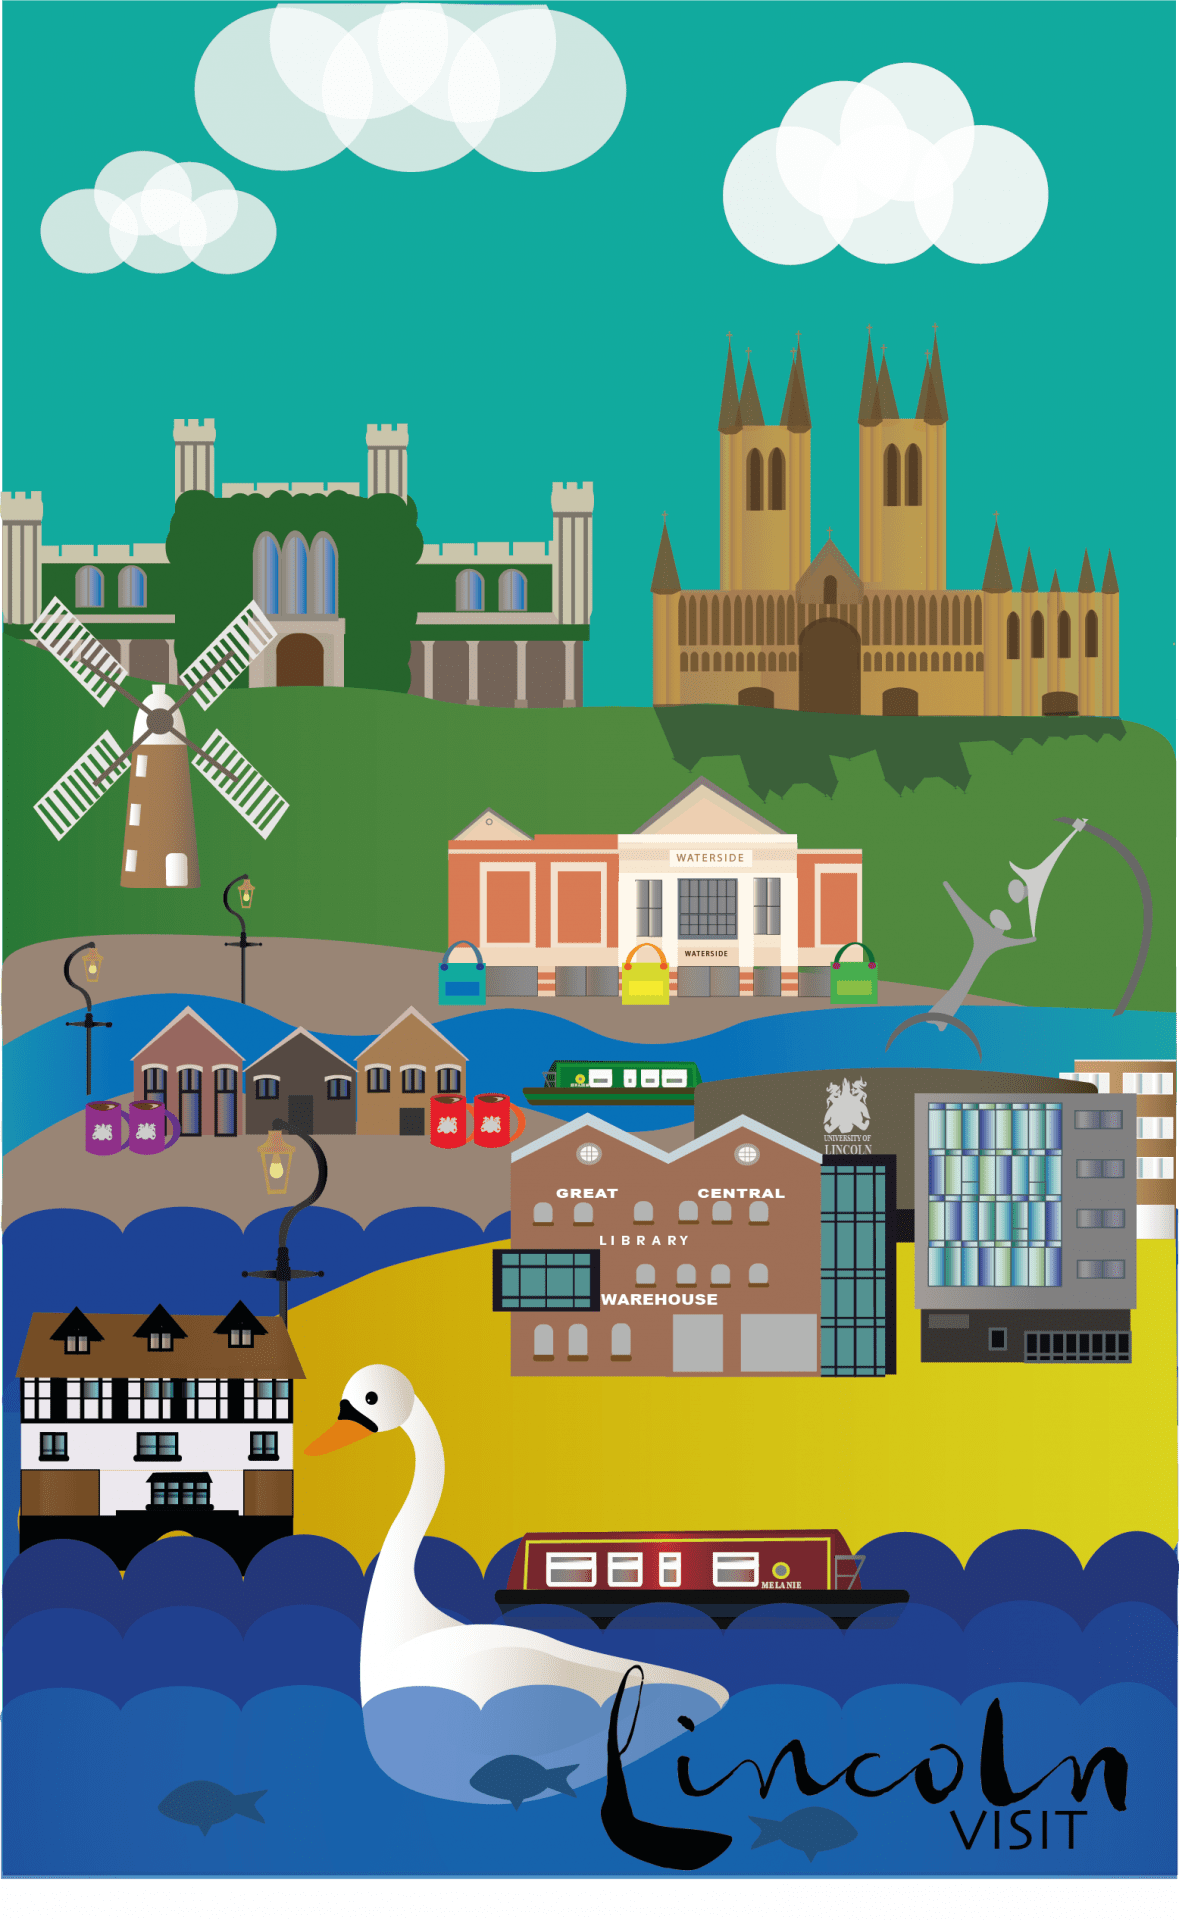 Illustration. A poster composed of minimalist illustrations of Lincoln landmarks, the bottoms reads: